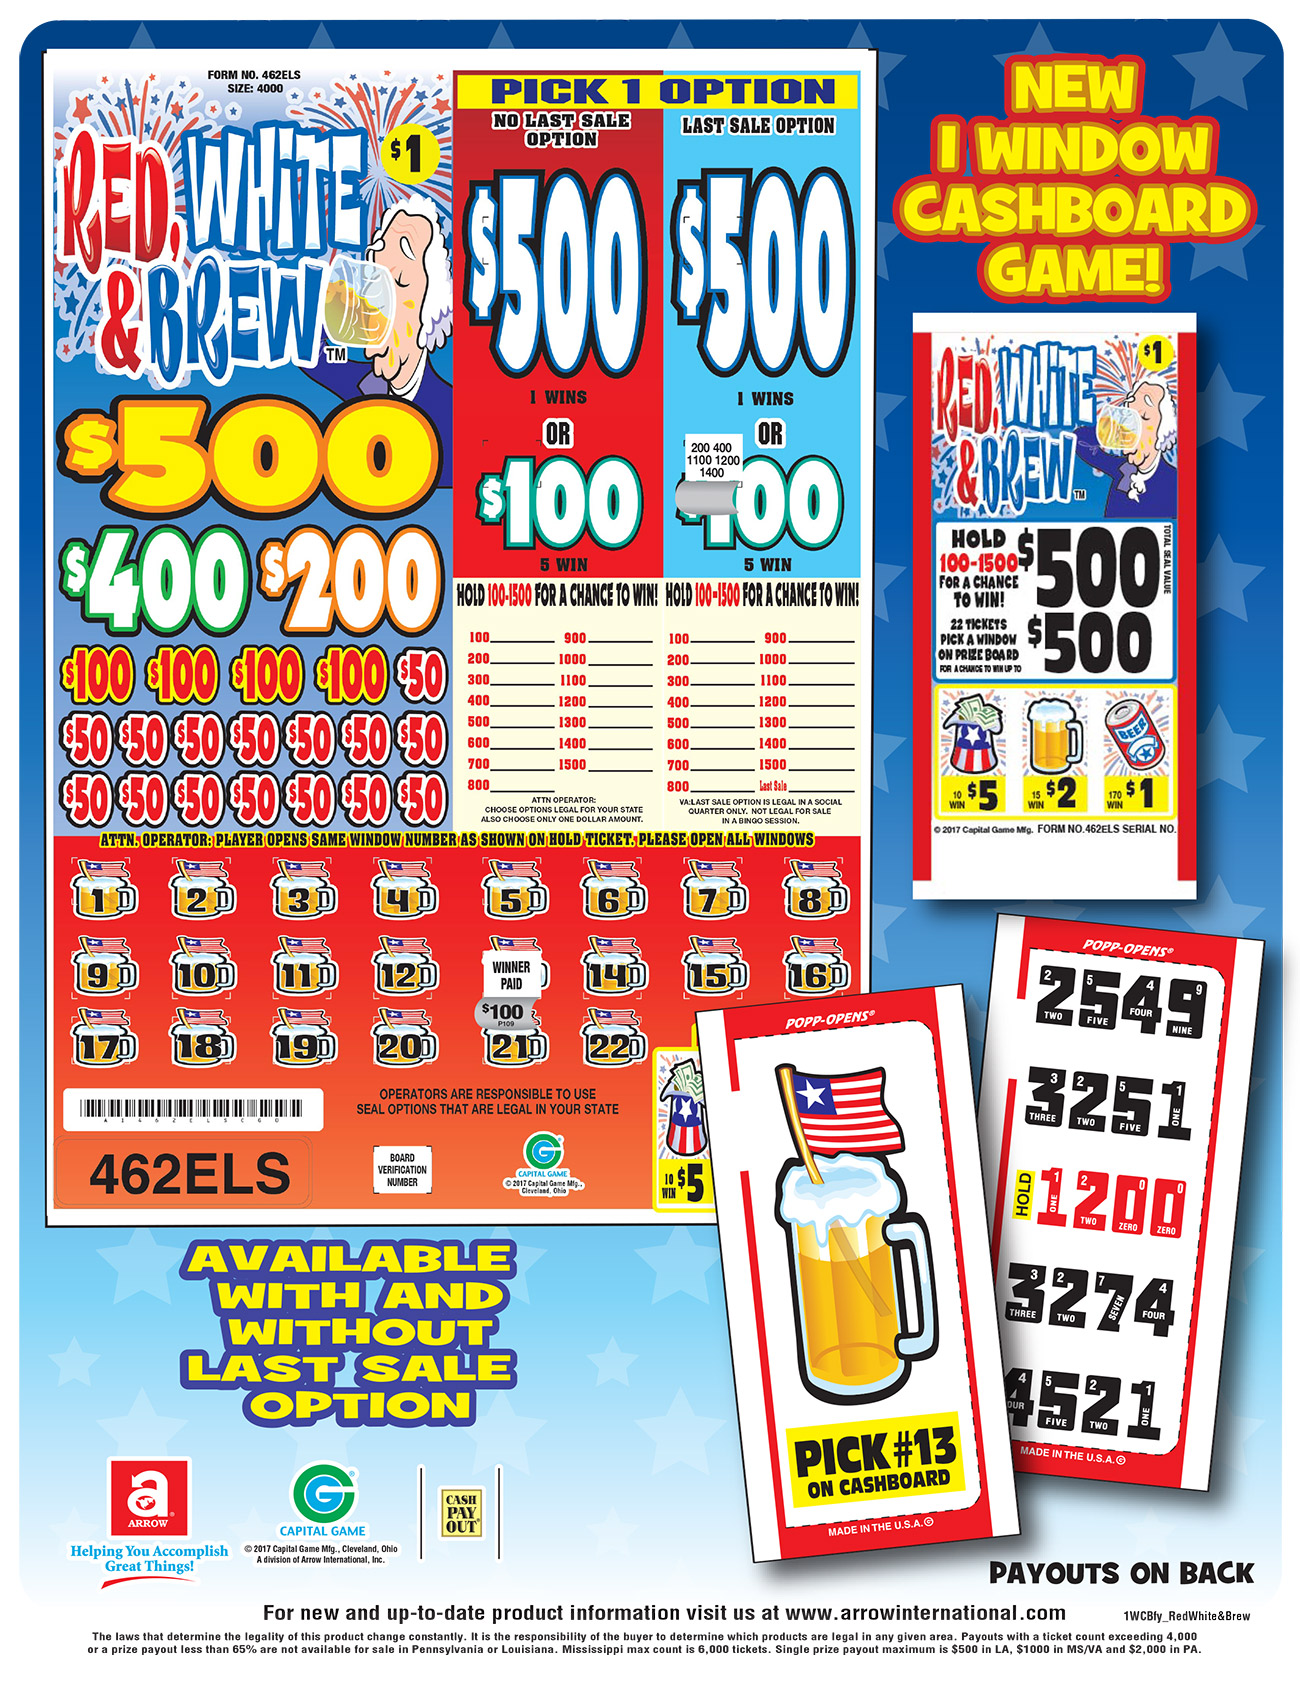 Pull Tabs Gt Seal Games Cashboard